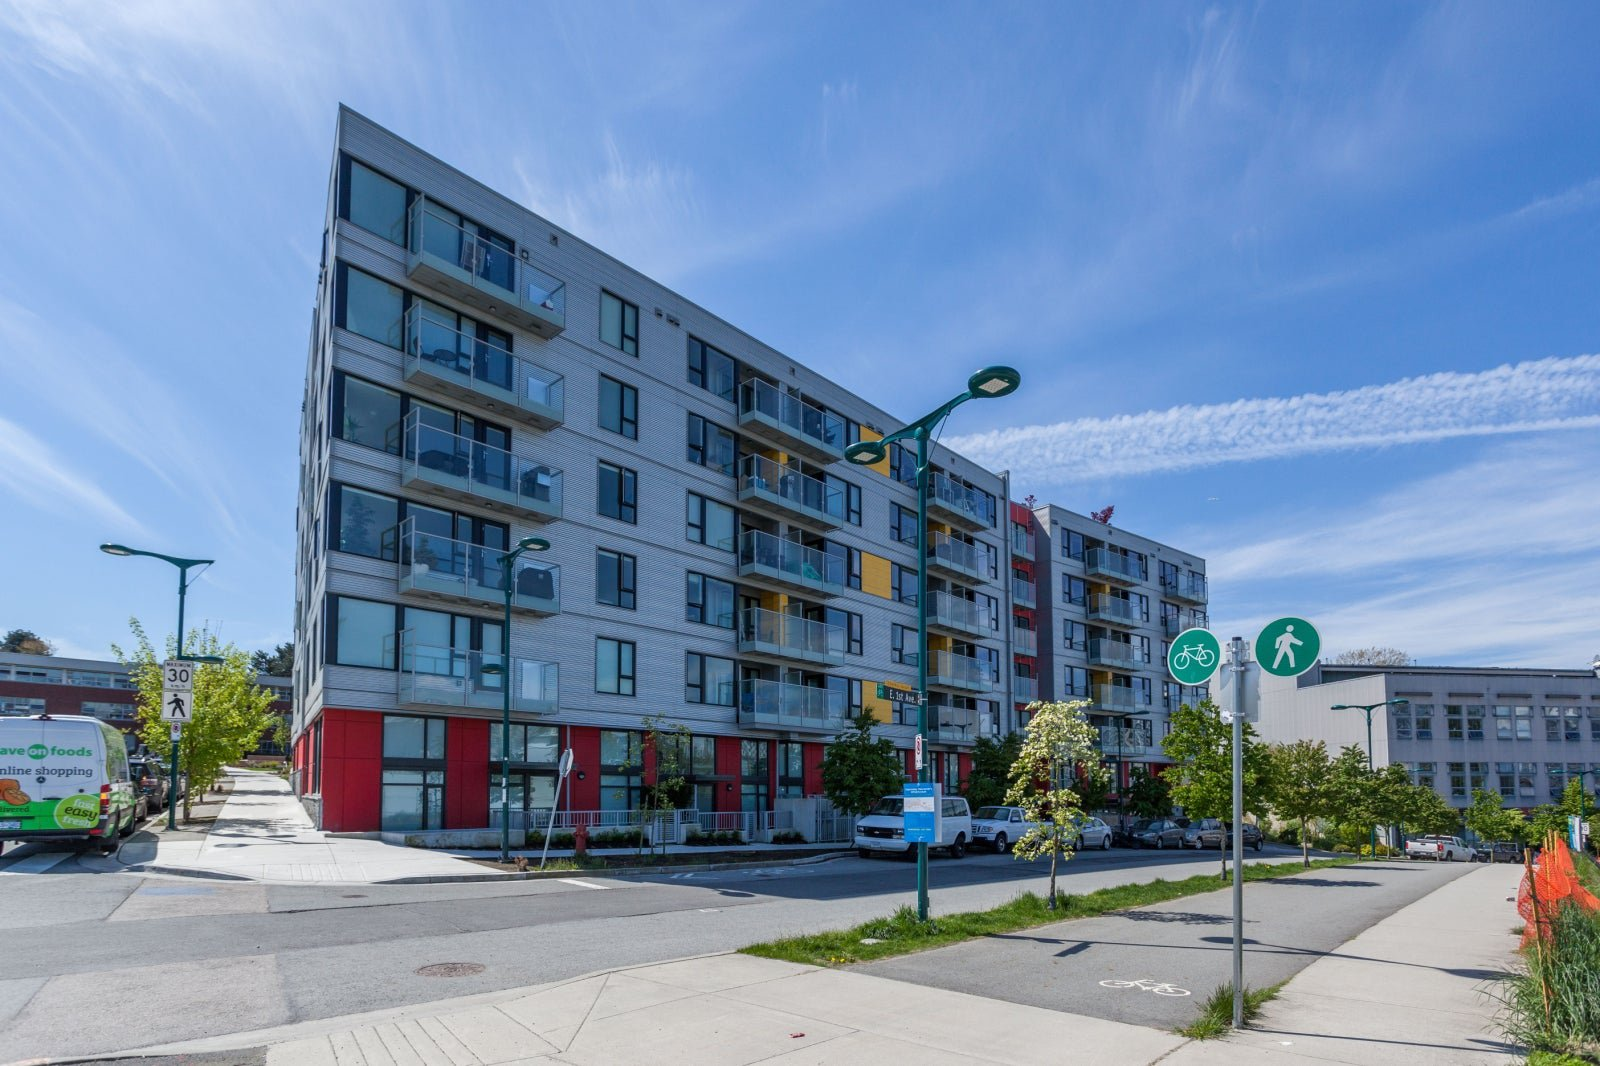 Main Photo: 318 384 E 1ST AVENUE in Vancouver East: Mount Pleasant VE Condo for sale : MLS®# R2241189